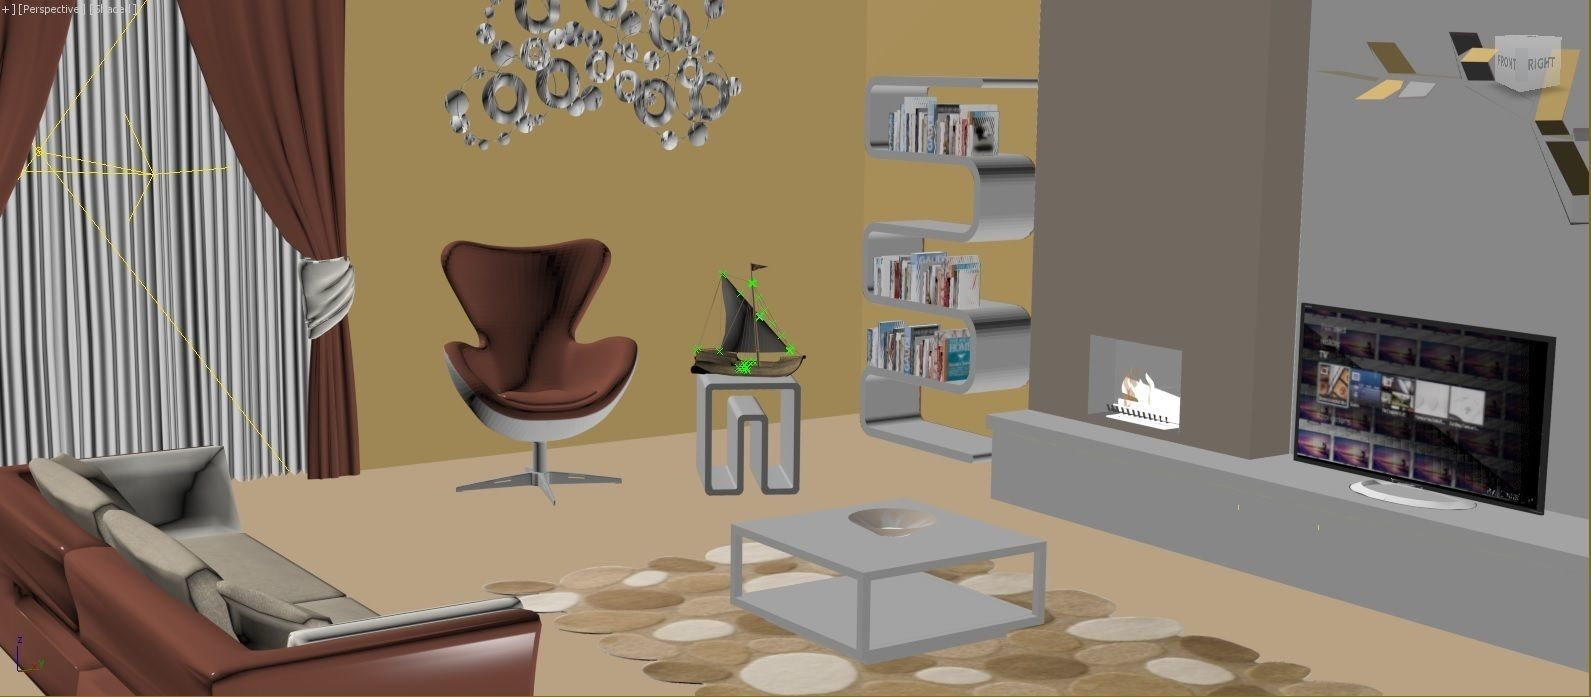 awesome black living room 3d model | Interior design living room 3D Model – Buy Interior design ...